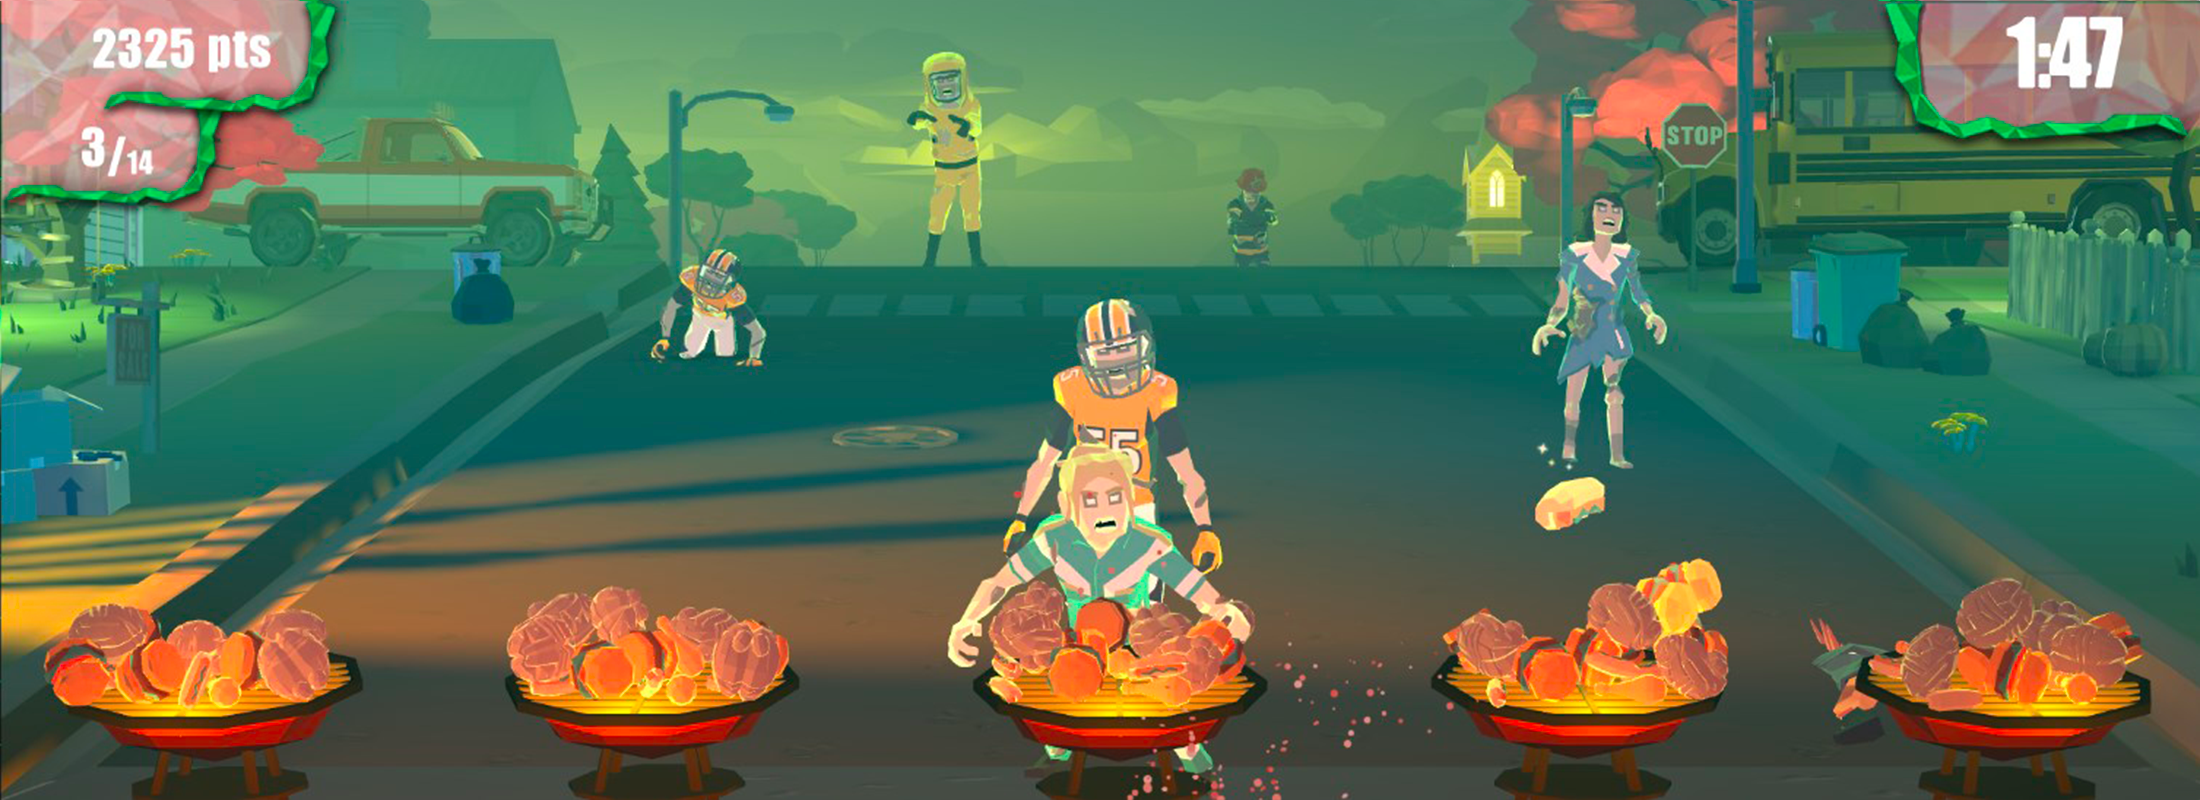 Zombies Kids gameplay picture